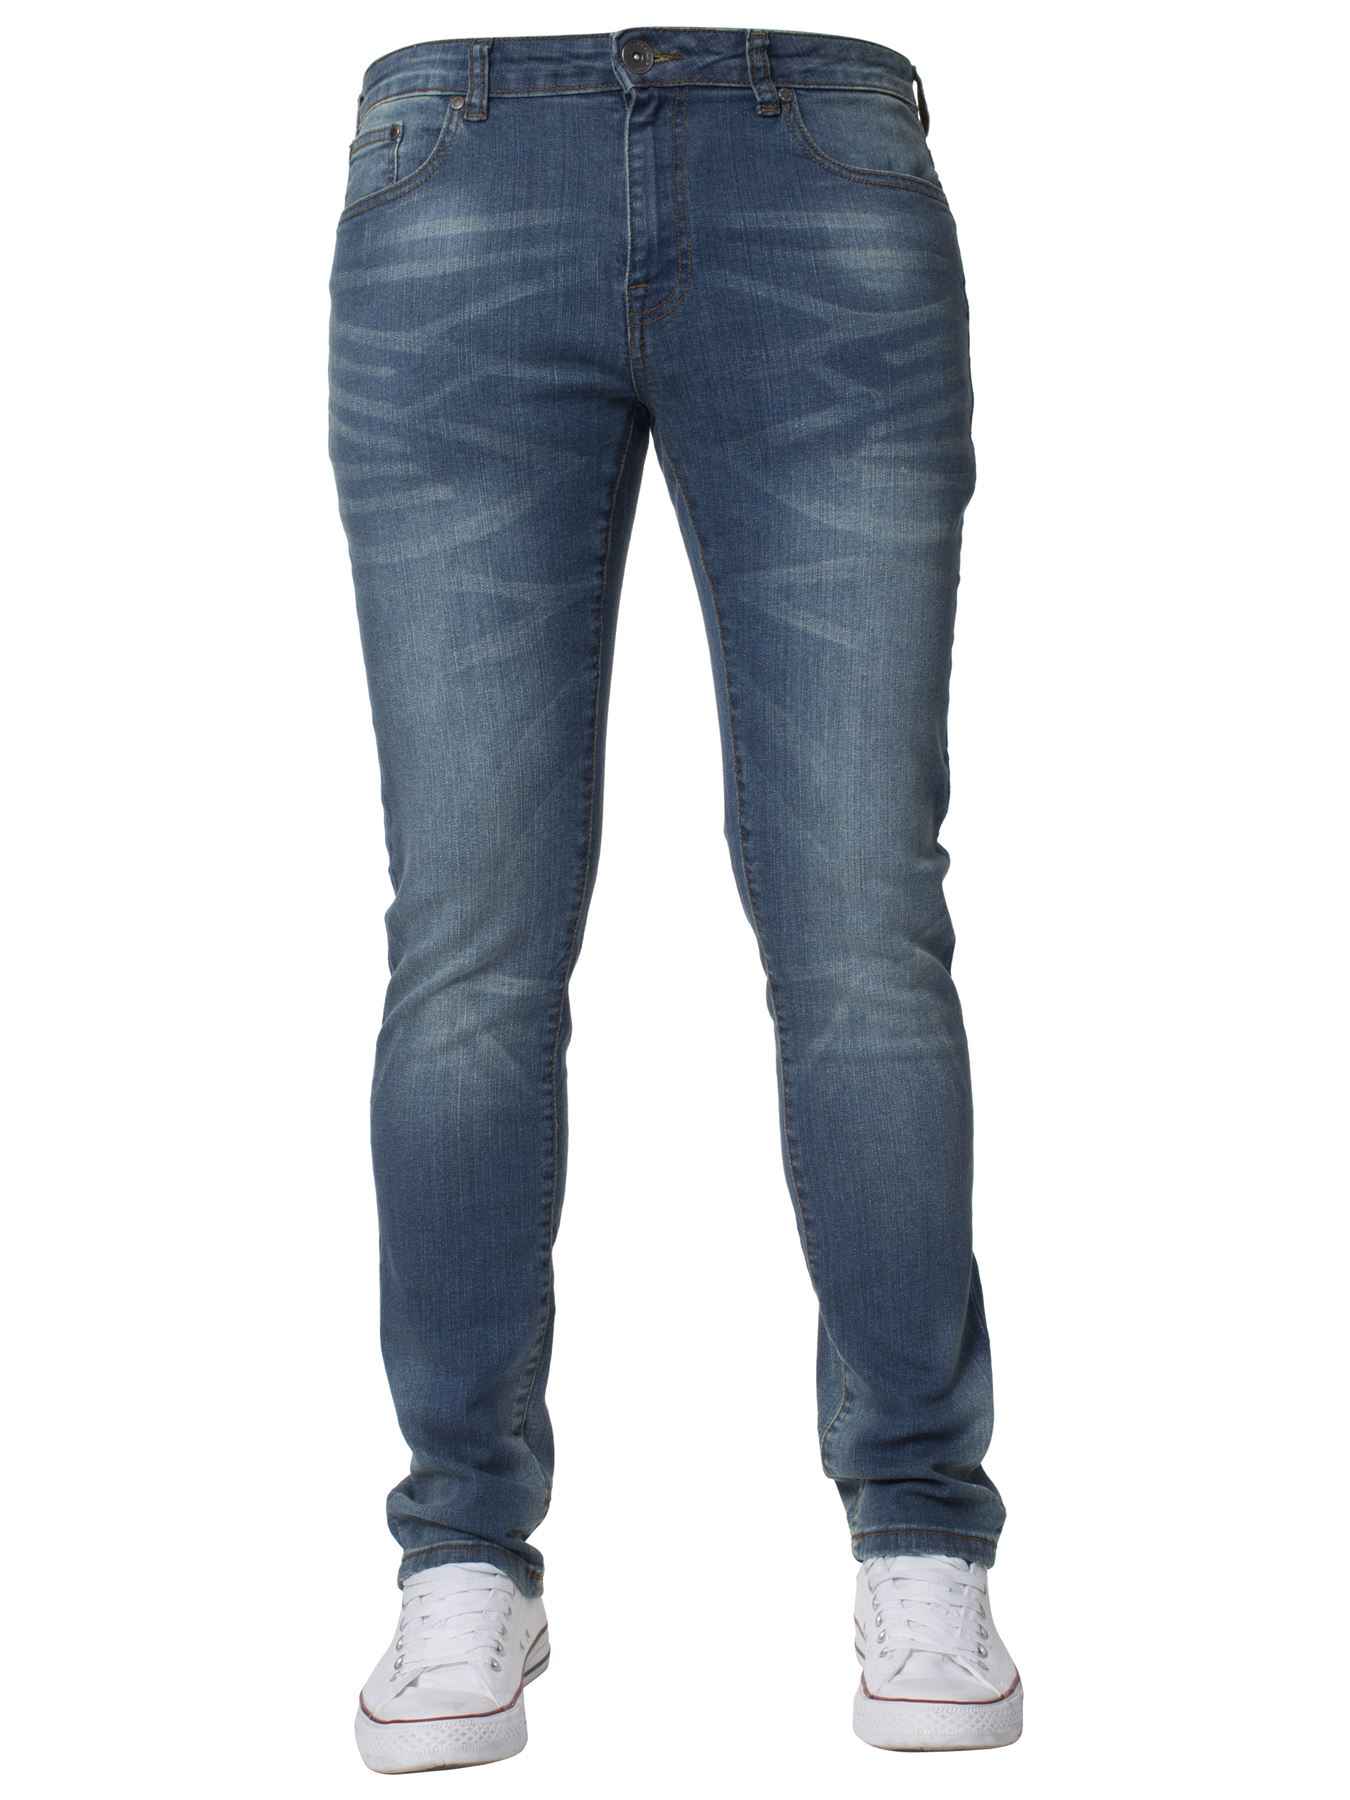 Mens-Skinny-Stretch-Jeans-Slim-Fit-Flex-Denim-Trousers-Pants-King-Sizes-by-Kruze thumbnail 22